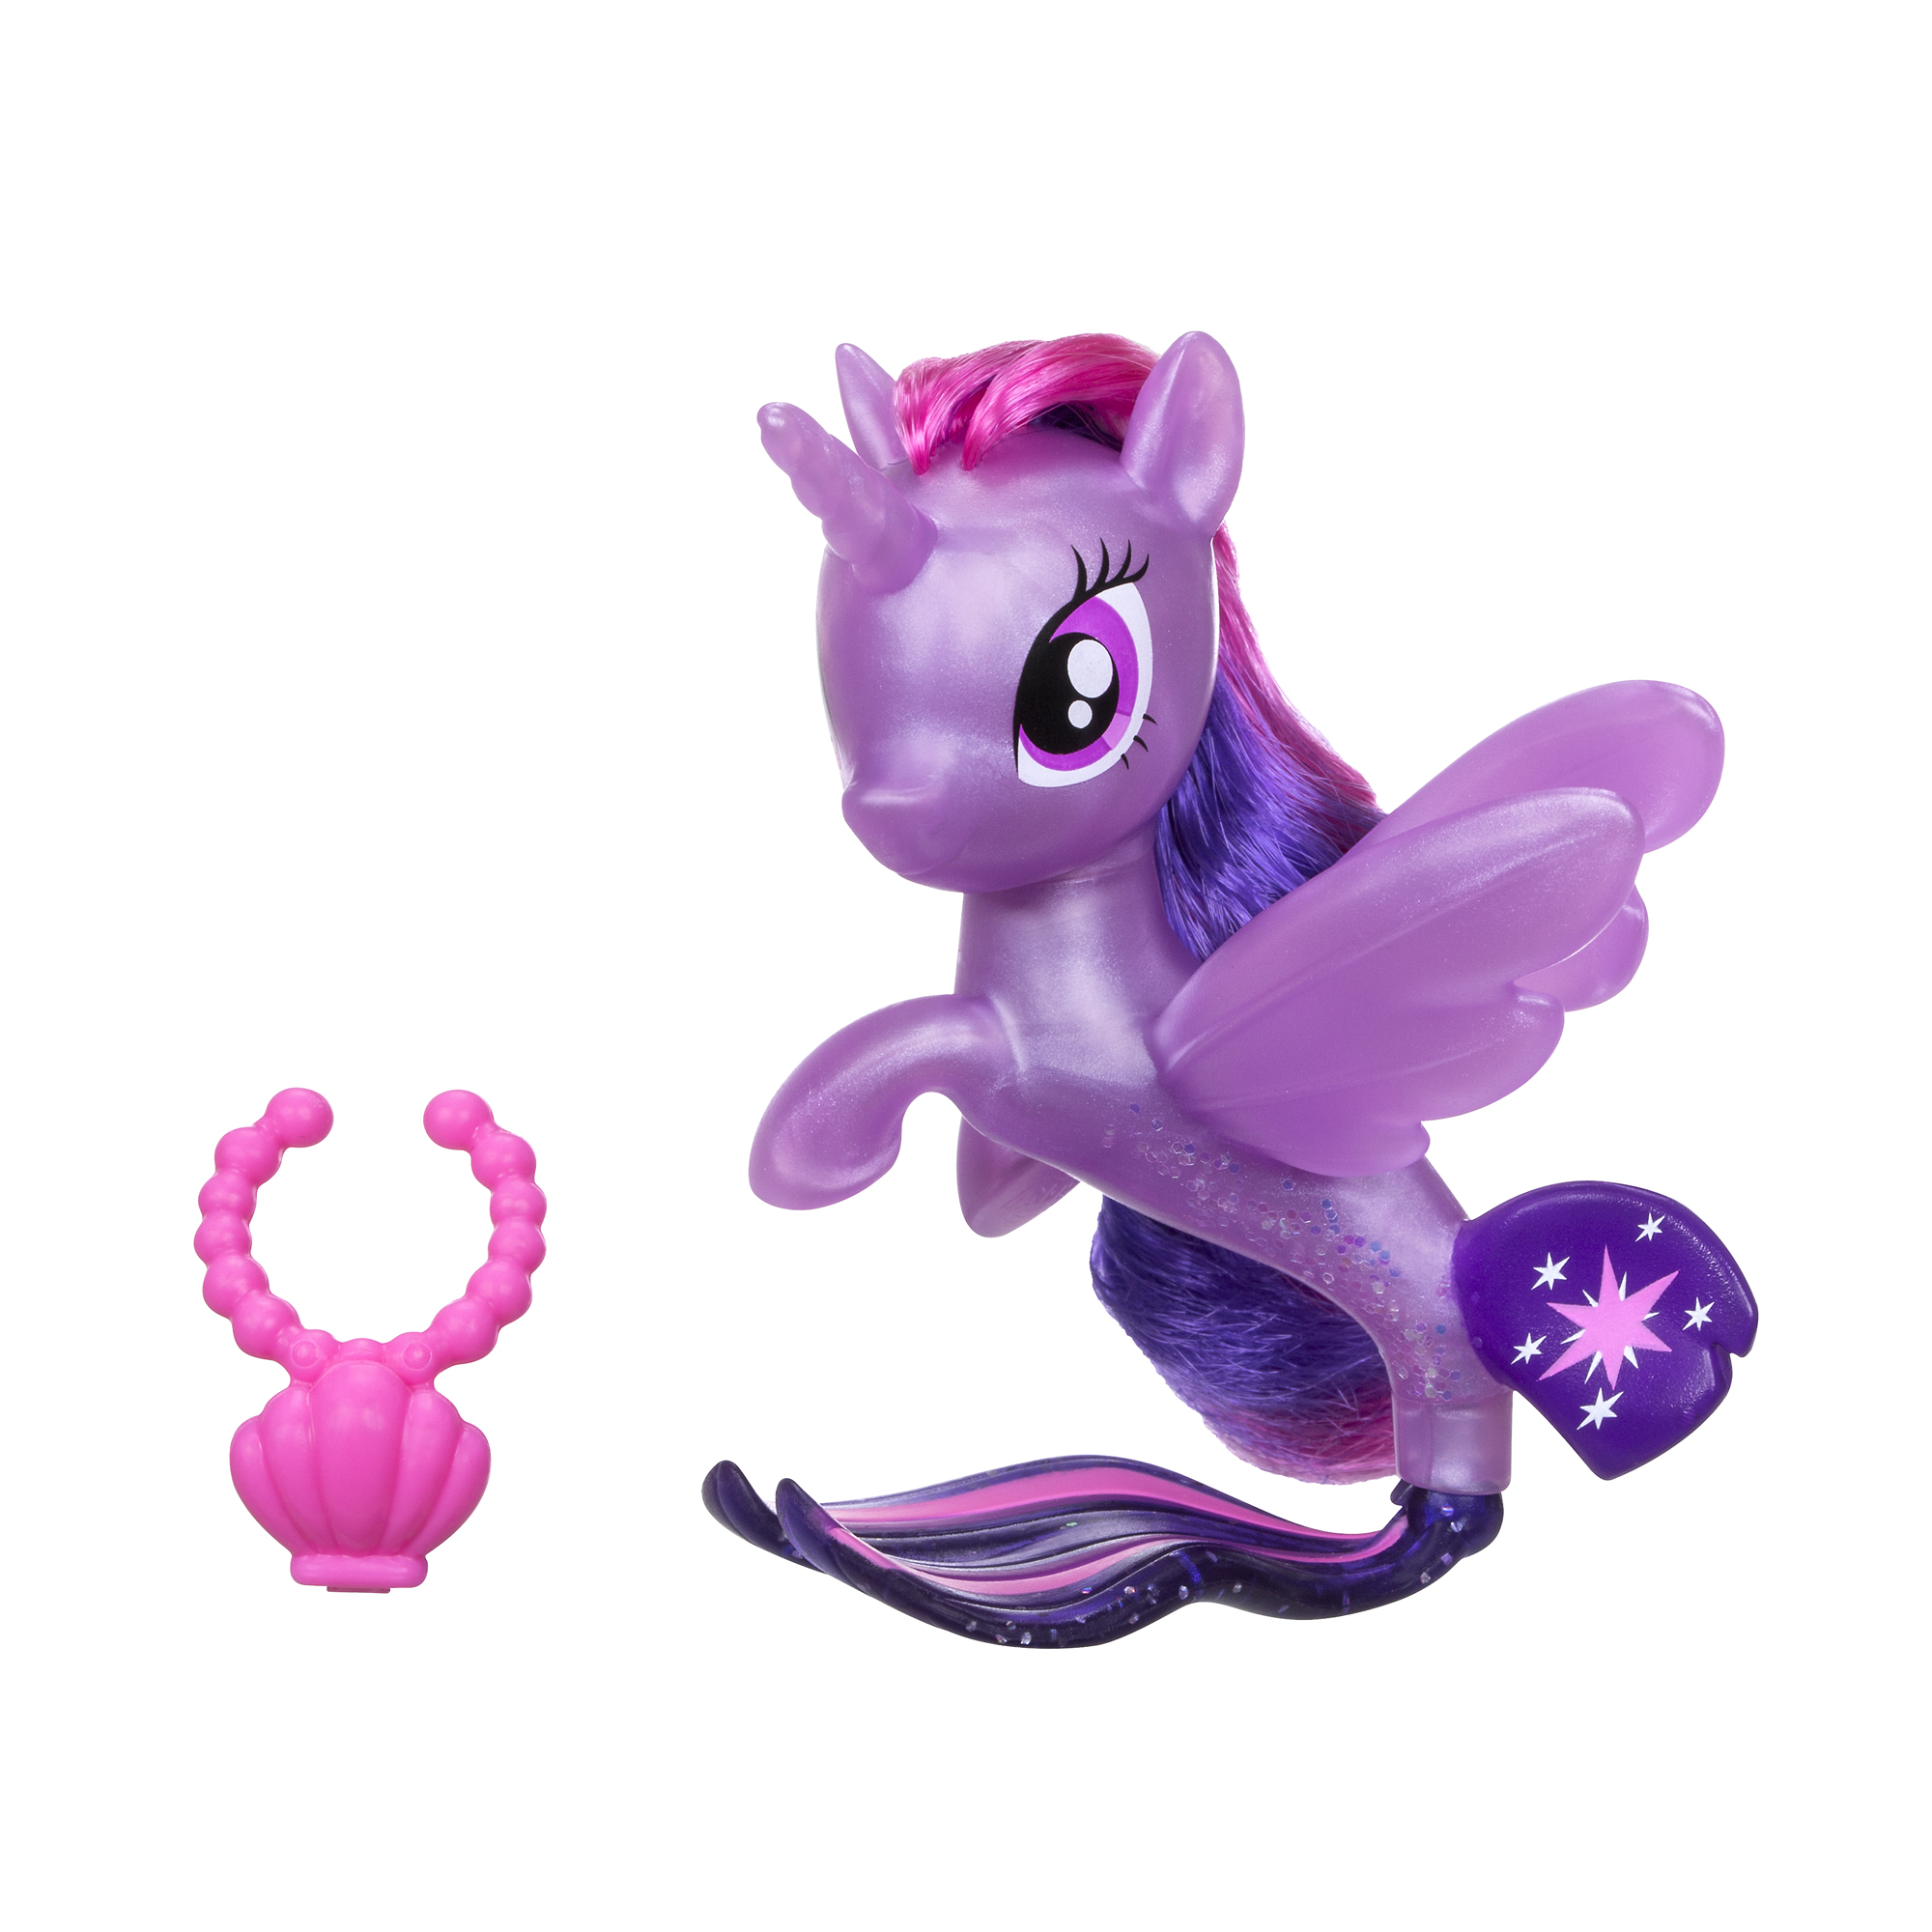 My Little Pony the Movie Twilight Sparkle Seapony by Hasbro